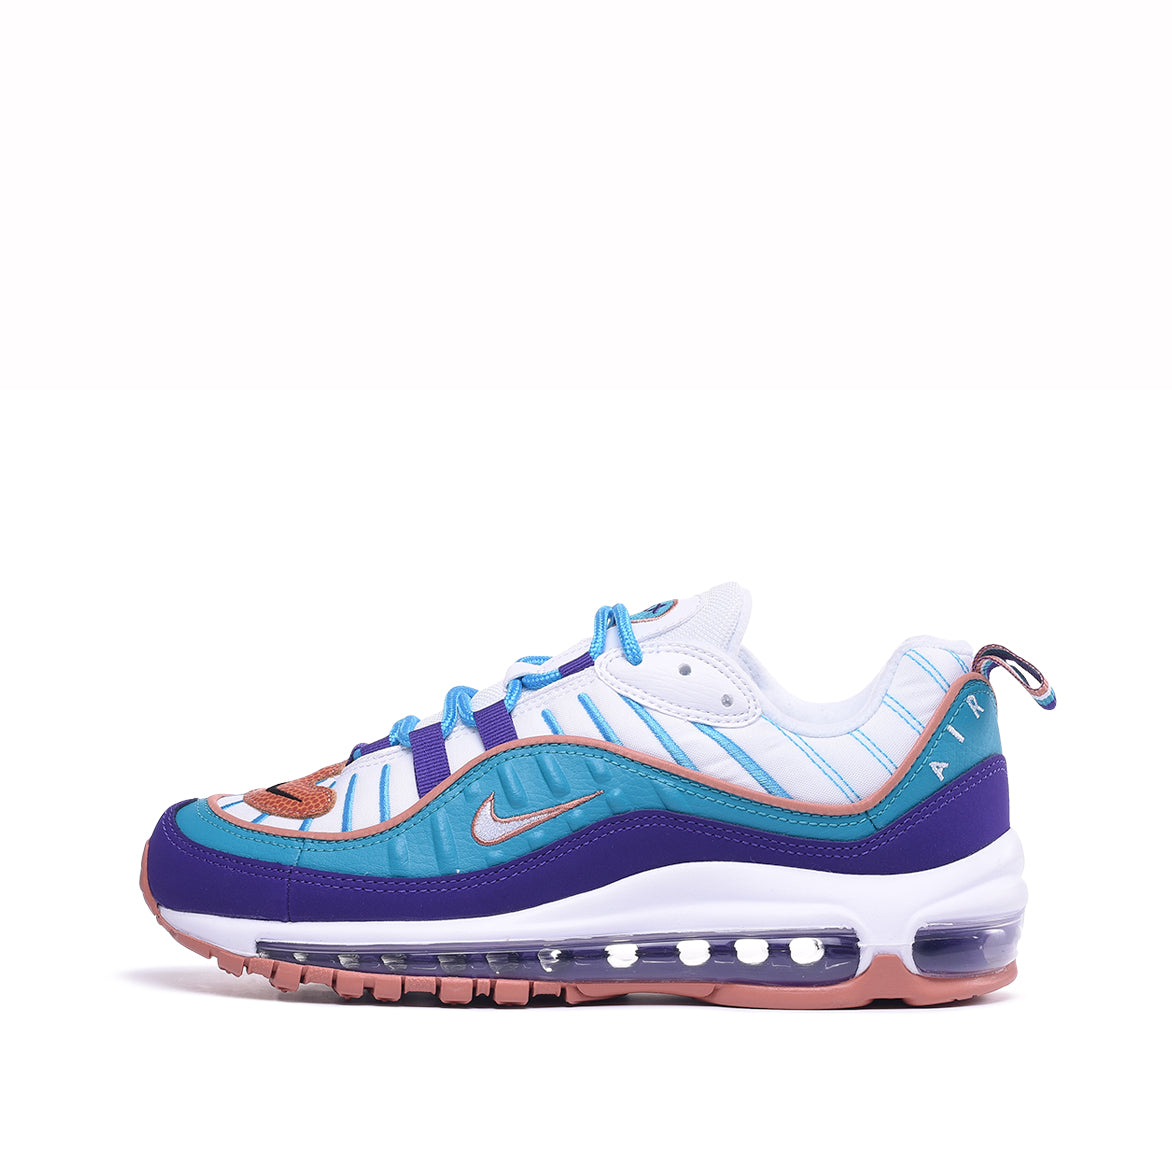 dd4791c93d518 AIR MAX 98 (GS) - COURT PURPLE / TERRA BLUSH | City Blue